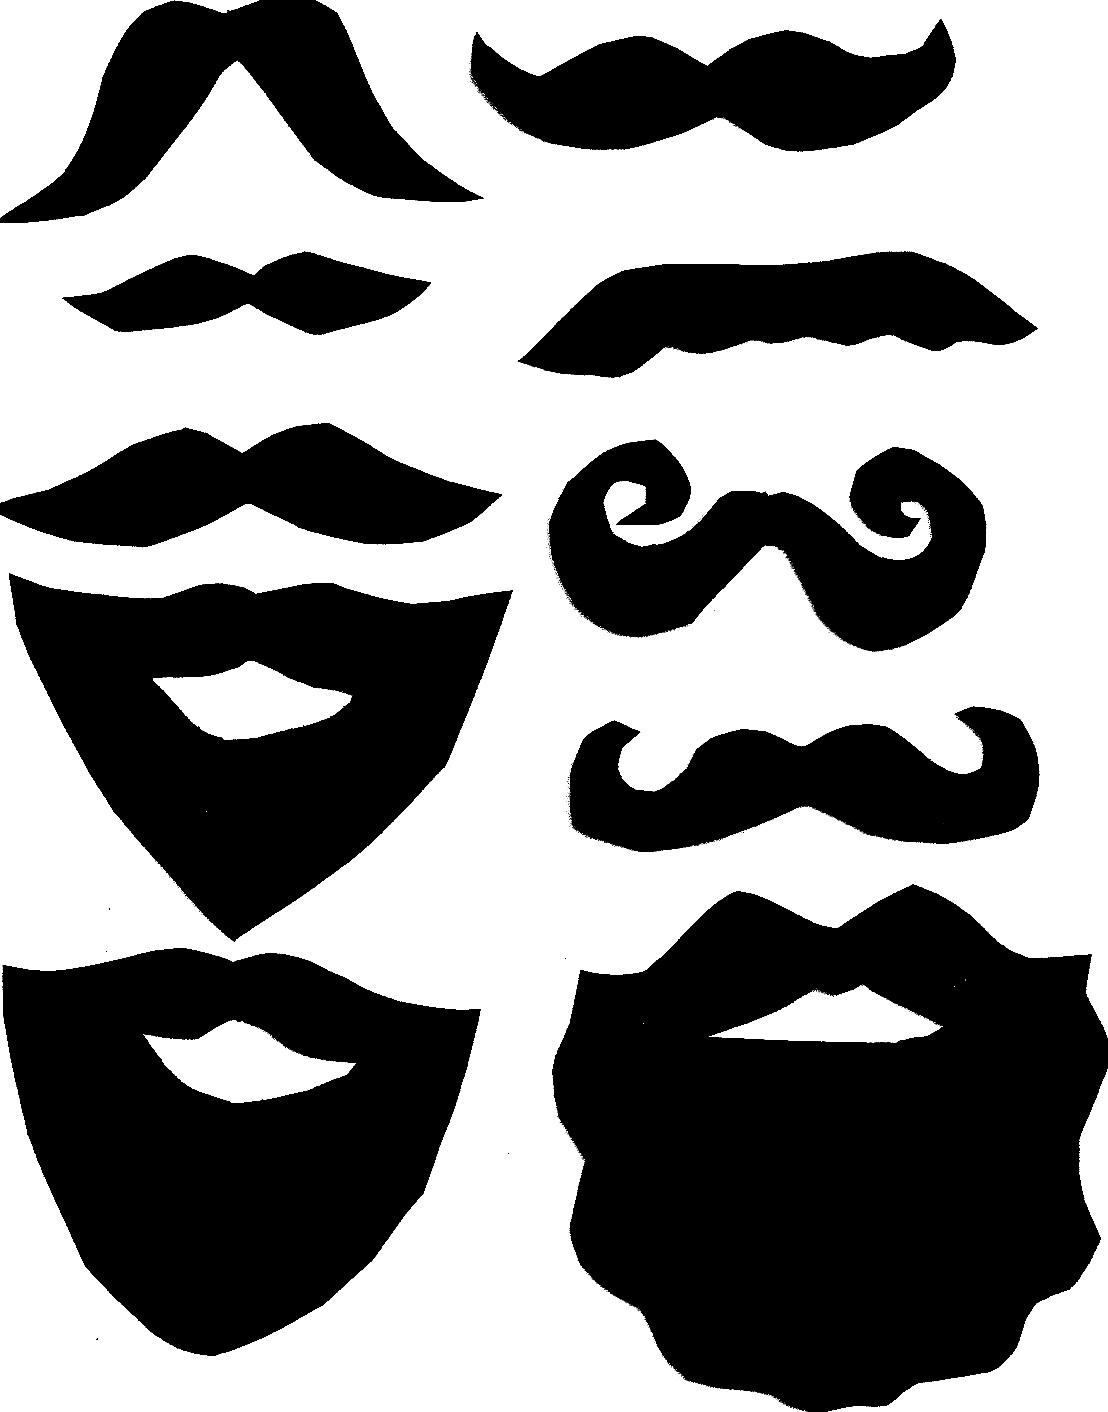 Mustache making a 1 in the end clipart clip art black and white Free Moustache Graphic, Download Free Clip Art, Free Clip ... clip art black and white